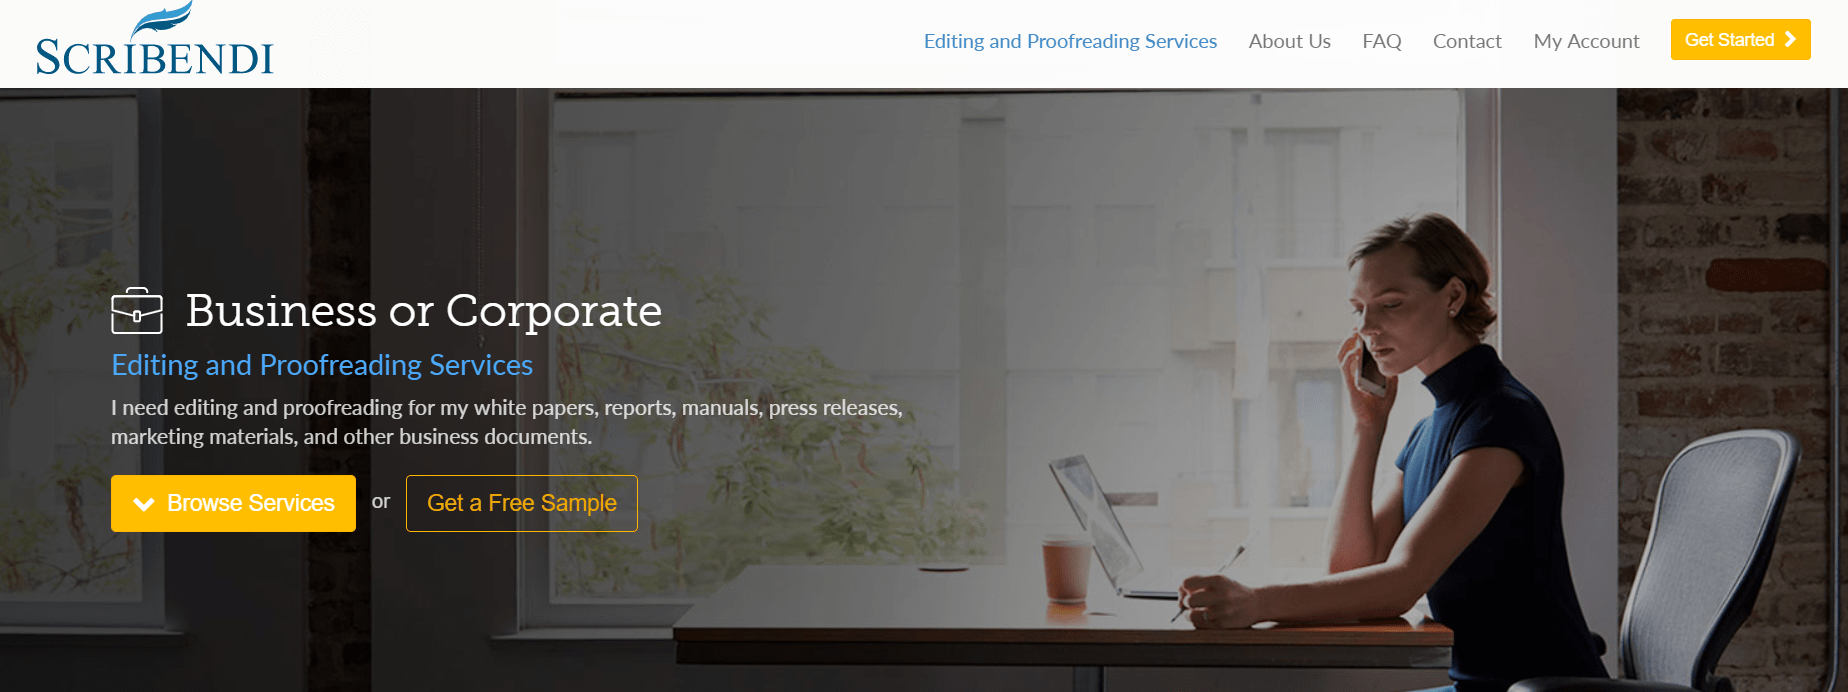 Scribendi Review- Editing and Proofreading Services for Business People